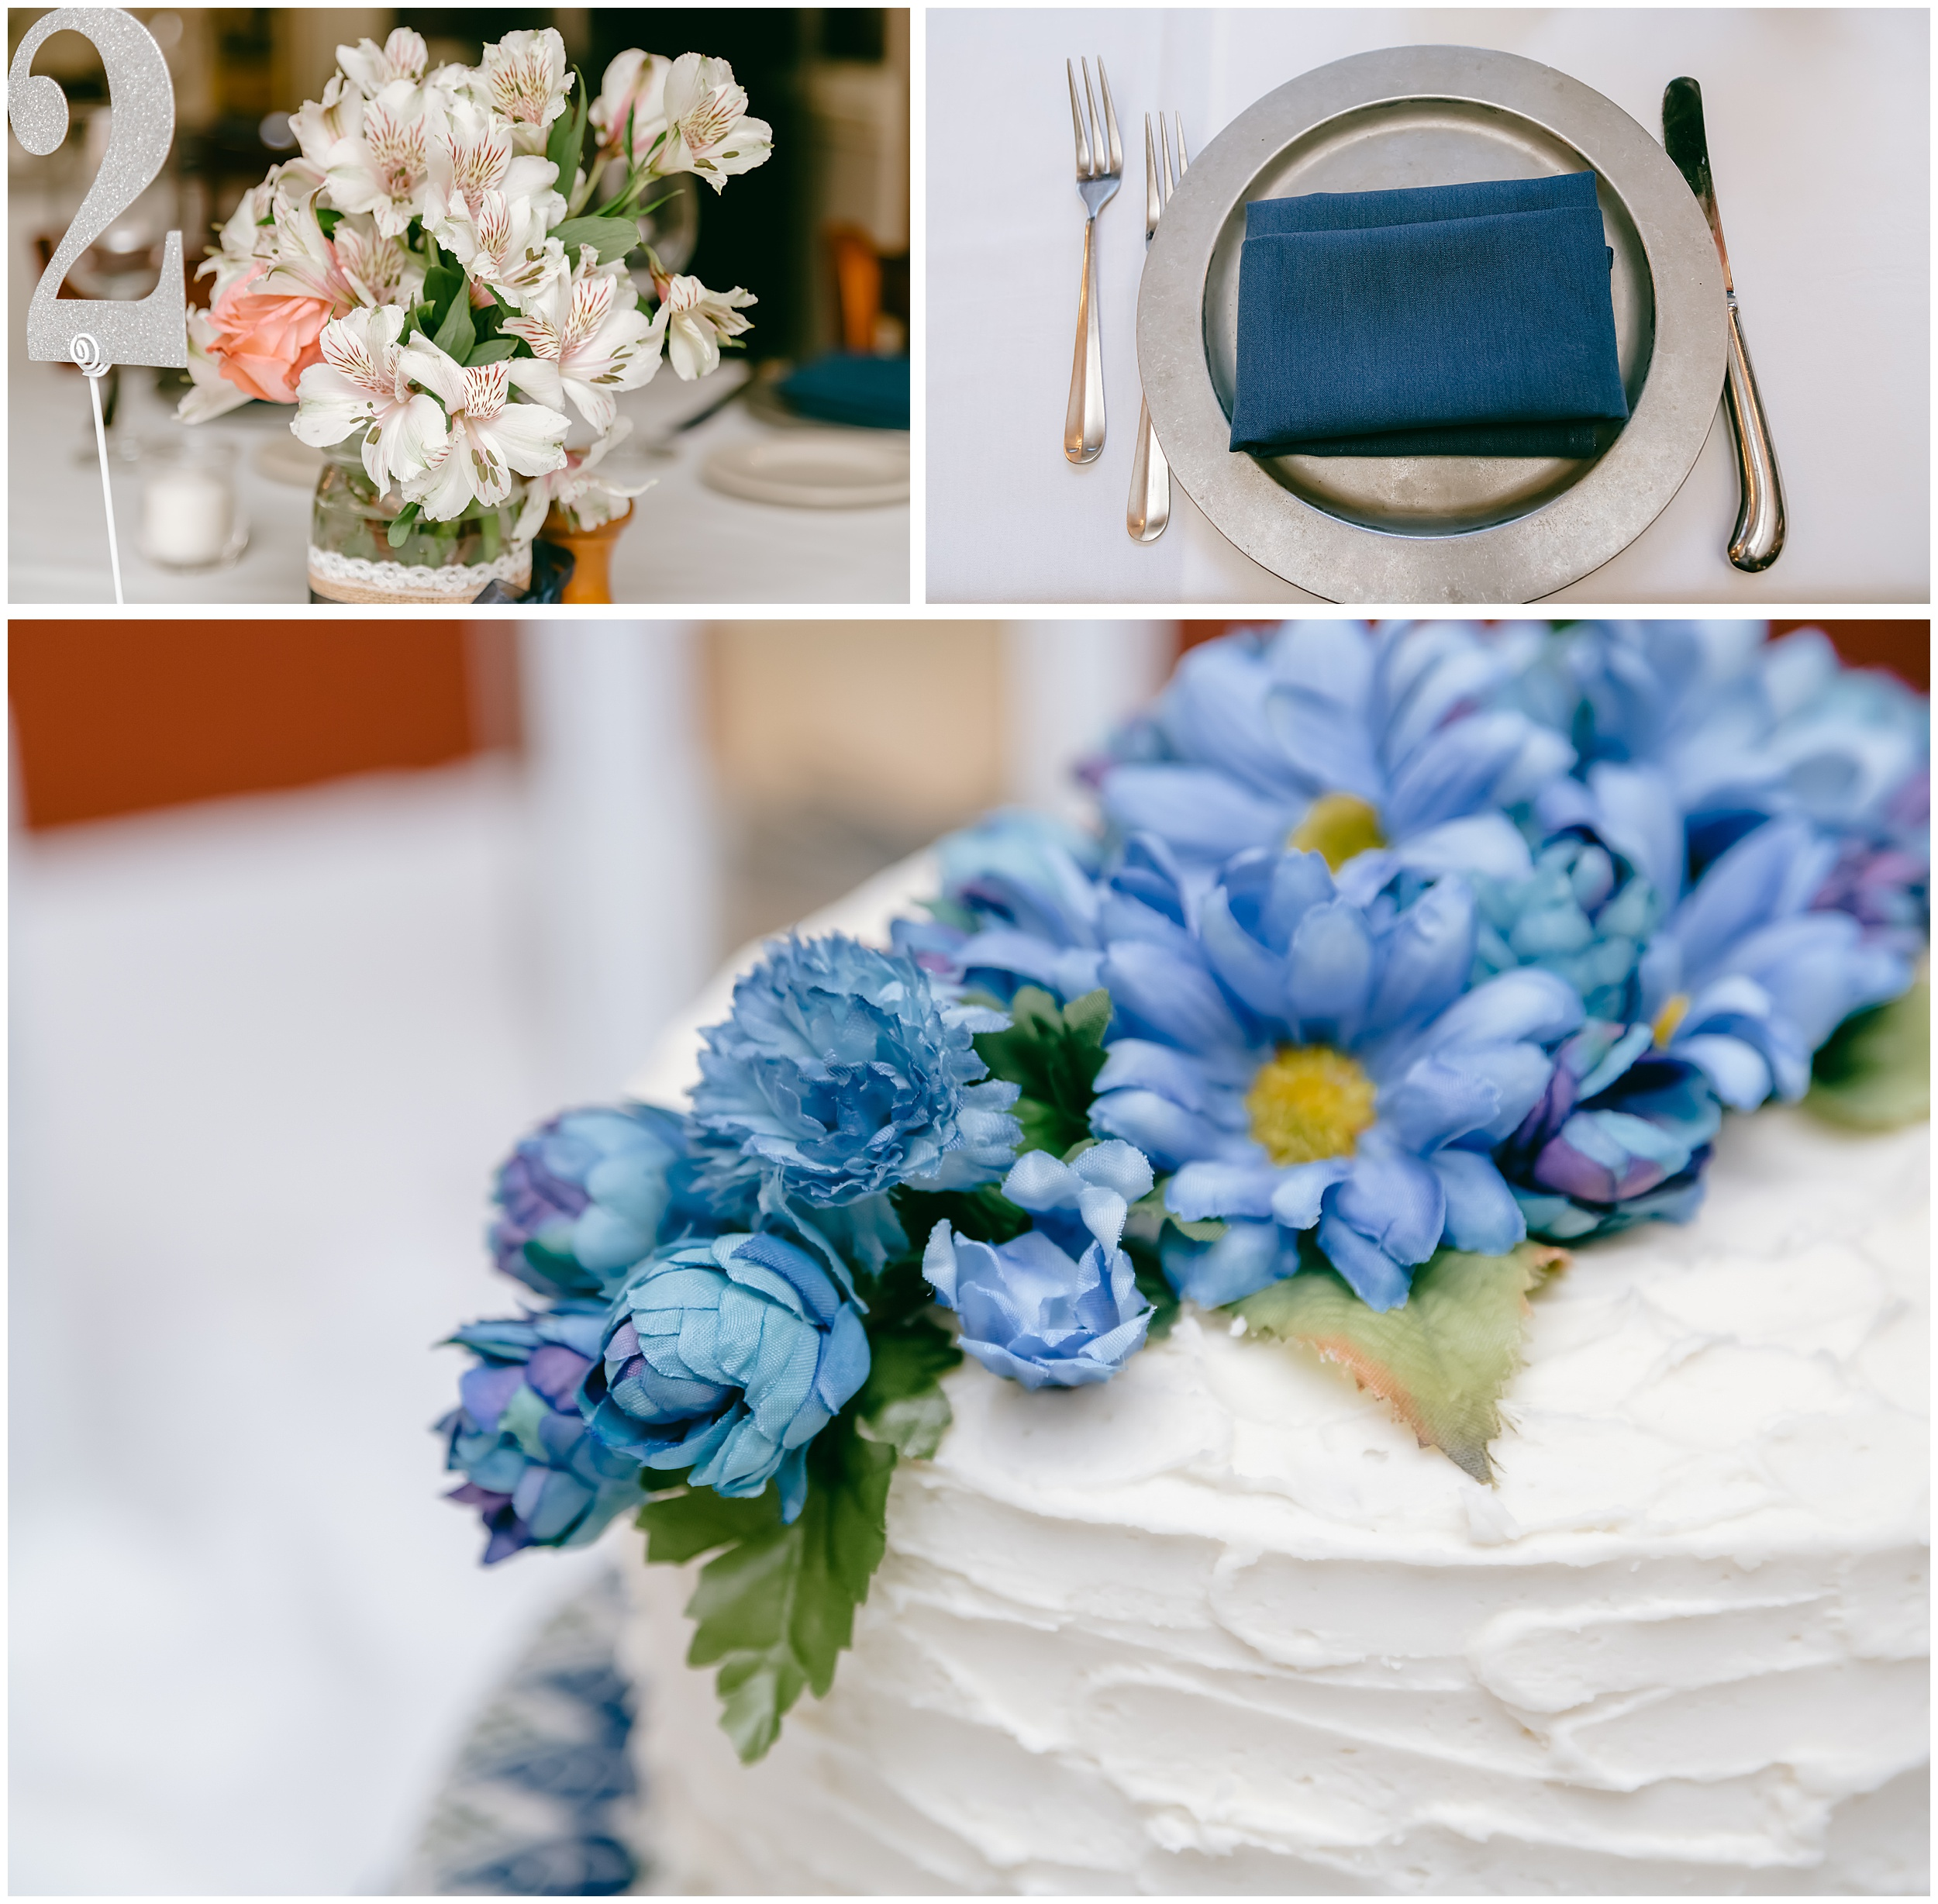 flowers-cake-place-setting-detials